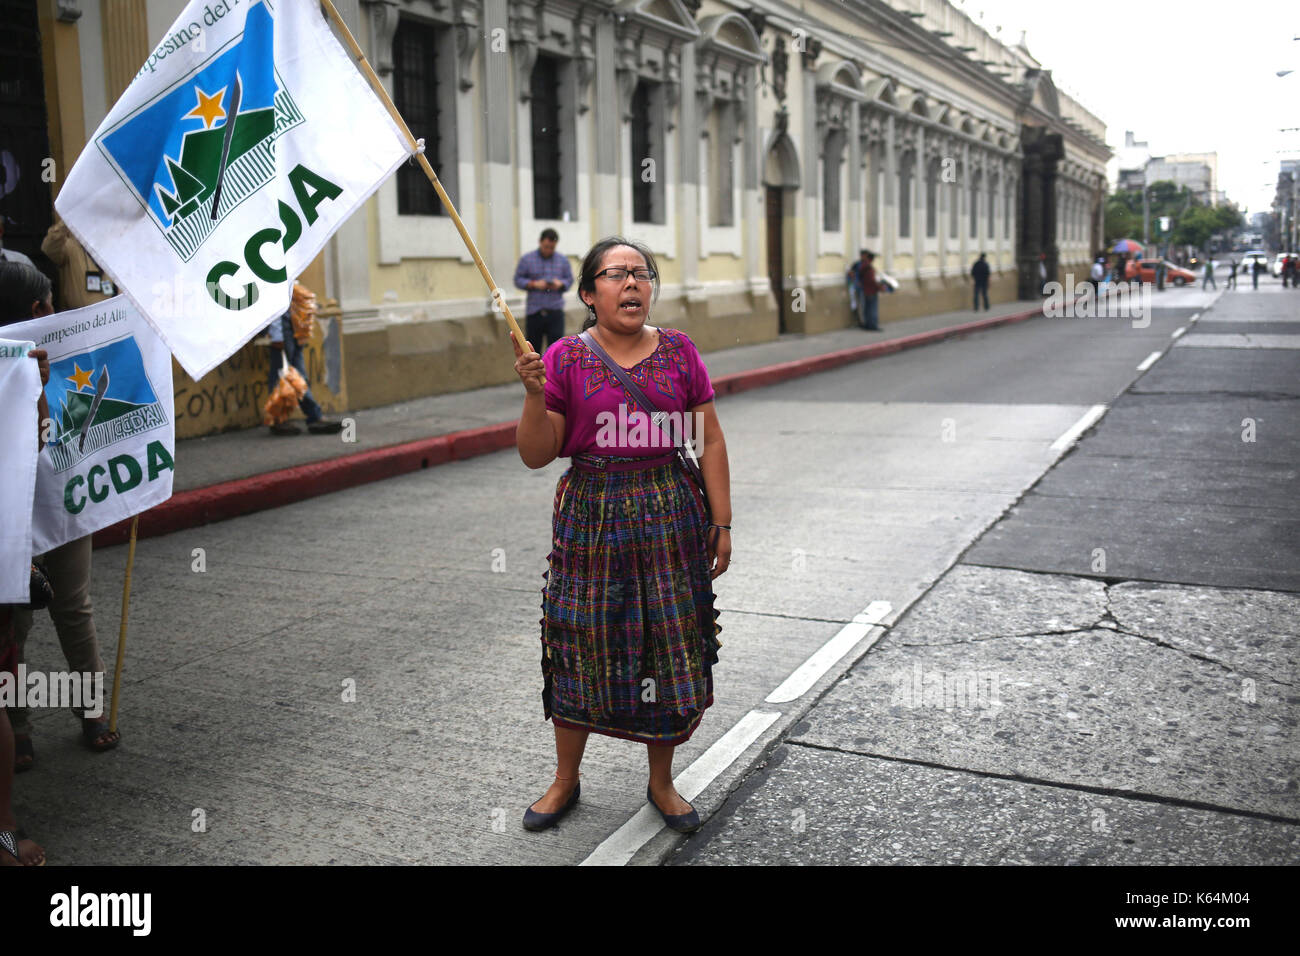 A group of protestors demand that deputies remove the privilege of Guatemalan President Jimmy Morales, as recommended by the legislative commission appointed by the Guatemalan Congress, to investigate Morales in pre-trial, in Guatemala City, Guatemala, 11 September 2017. The decision to take Morales' privilege after suspicions of illicit electoral funding is in the hands of 158 deputies of the Congress. EFE/Esteban Biba - Stock Image